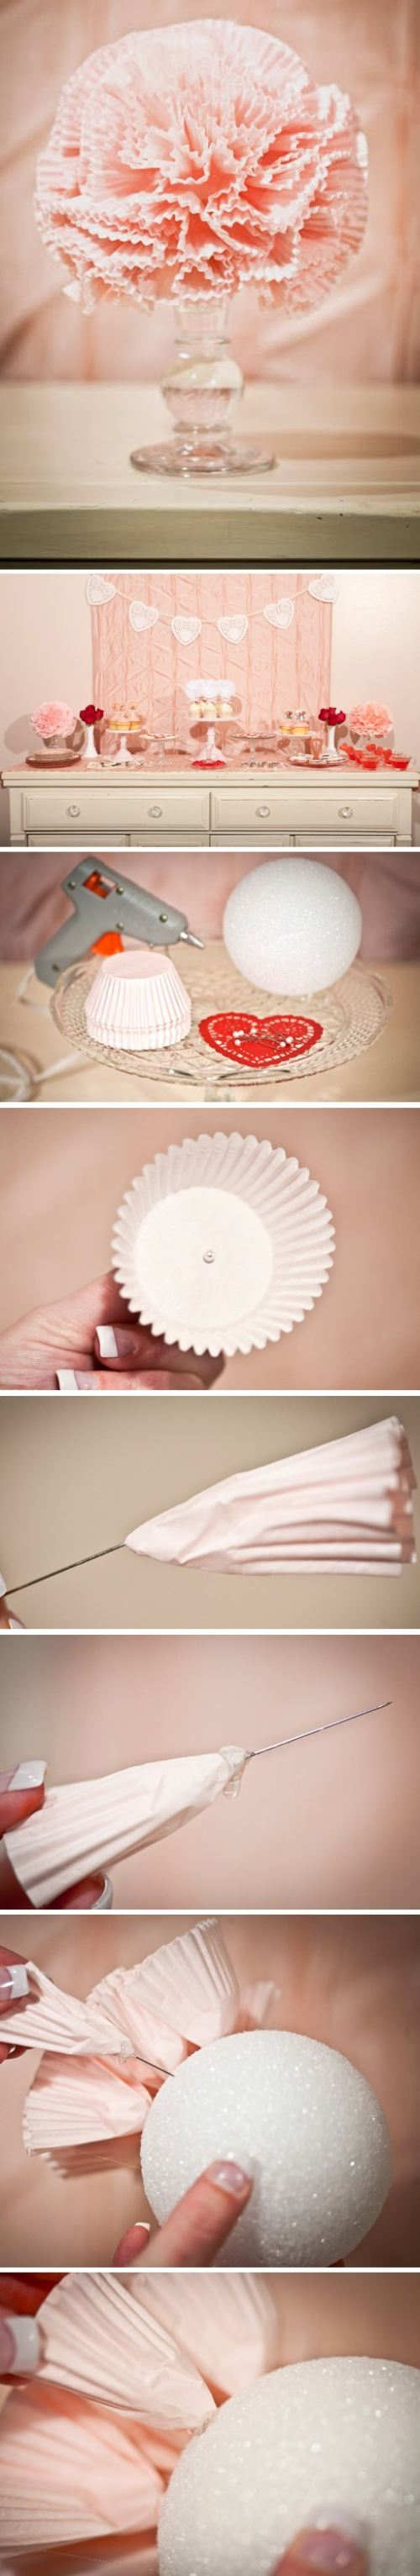 DIY Decoration for a wedding or baby shower